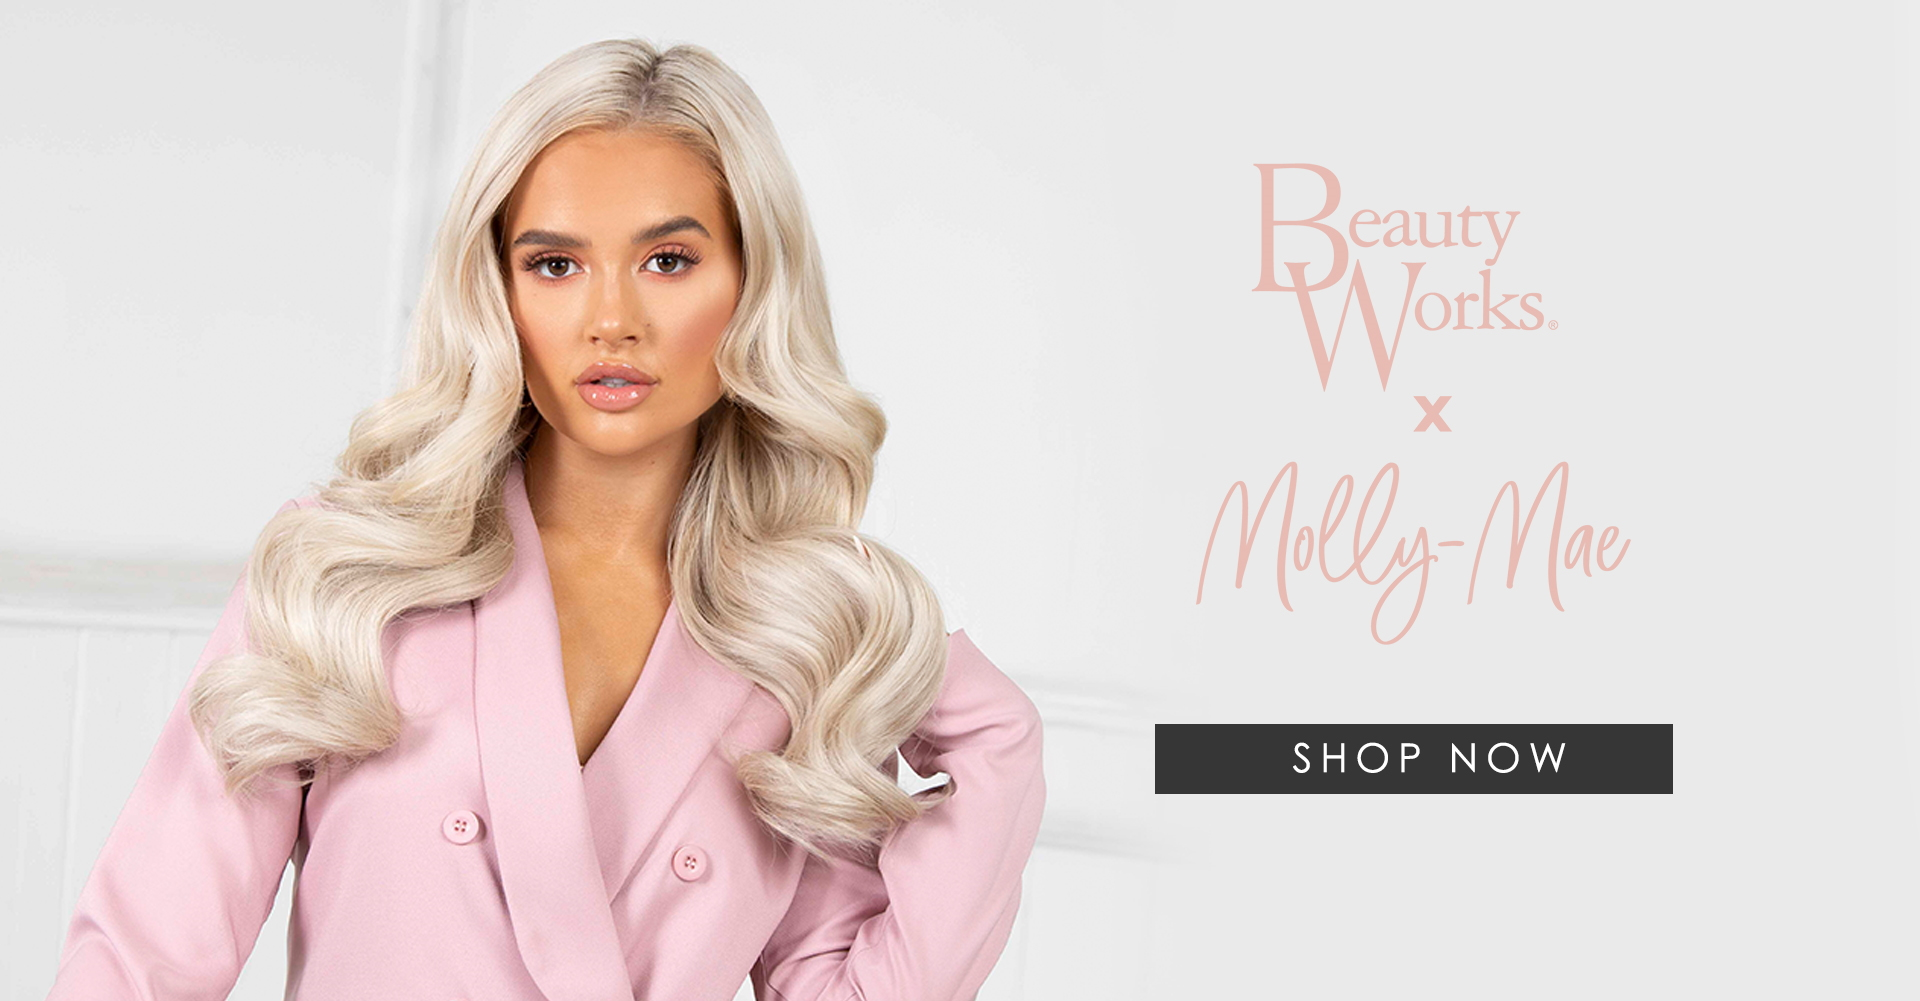 Beauty Works X Molly-Mae